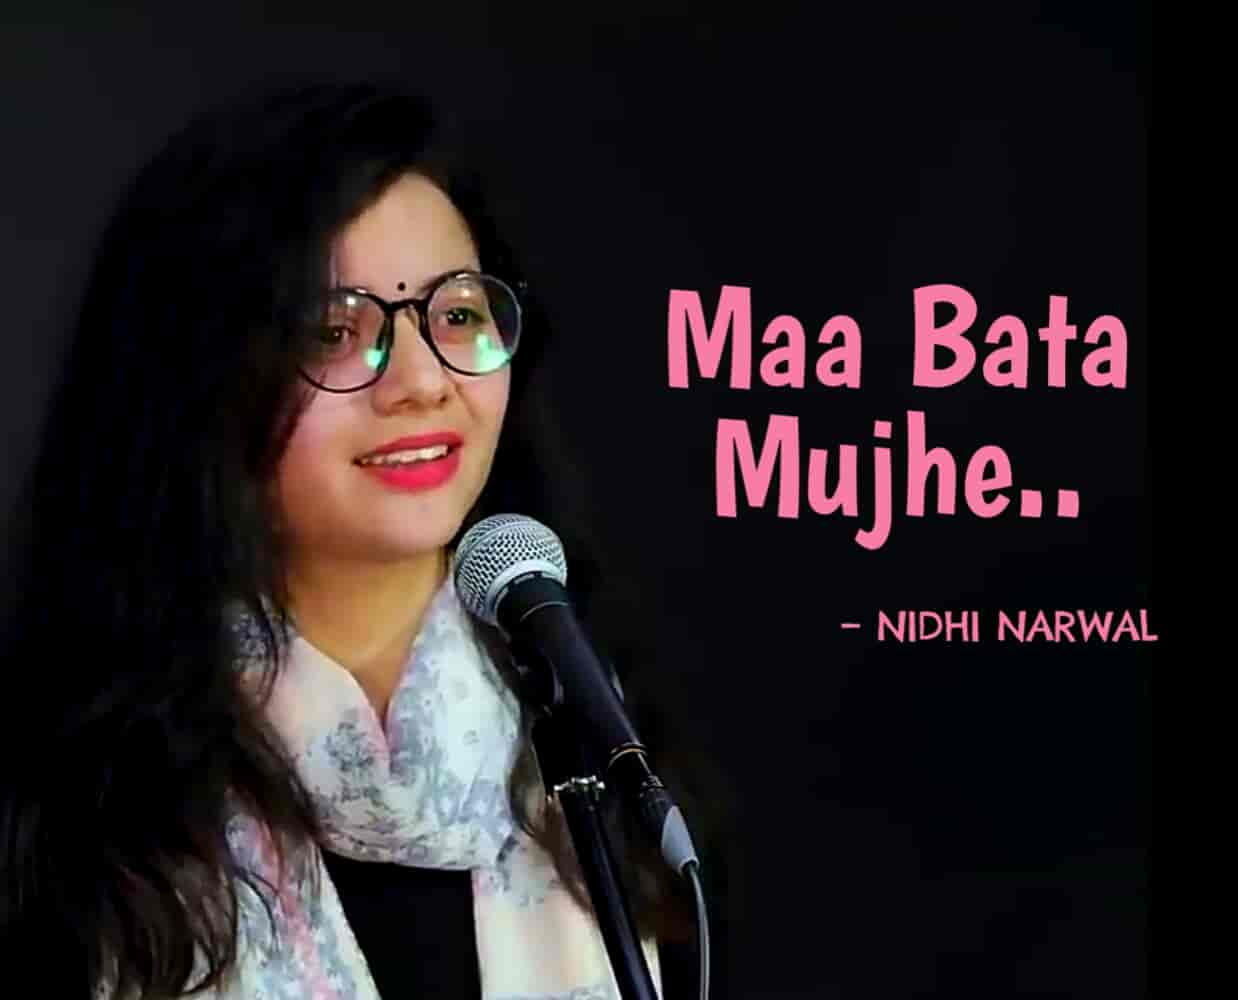 This Beautiful Poem 'Maa Bata Mujhe' which is written and performed by Nidhi Narwal.